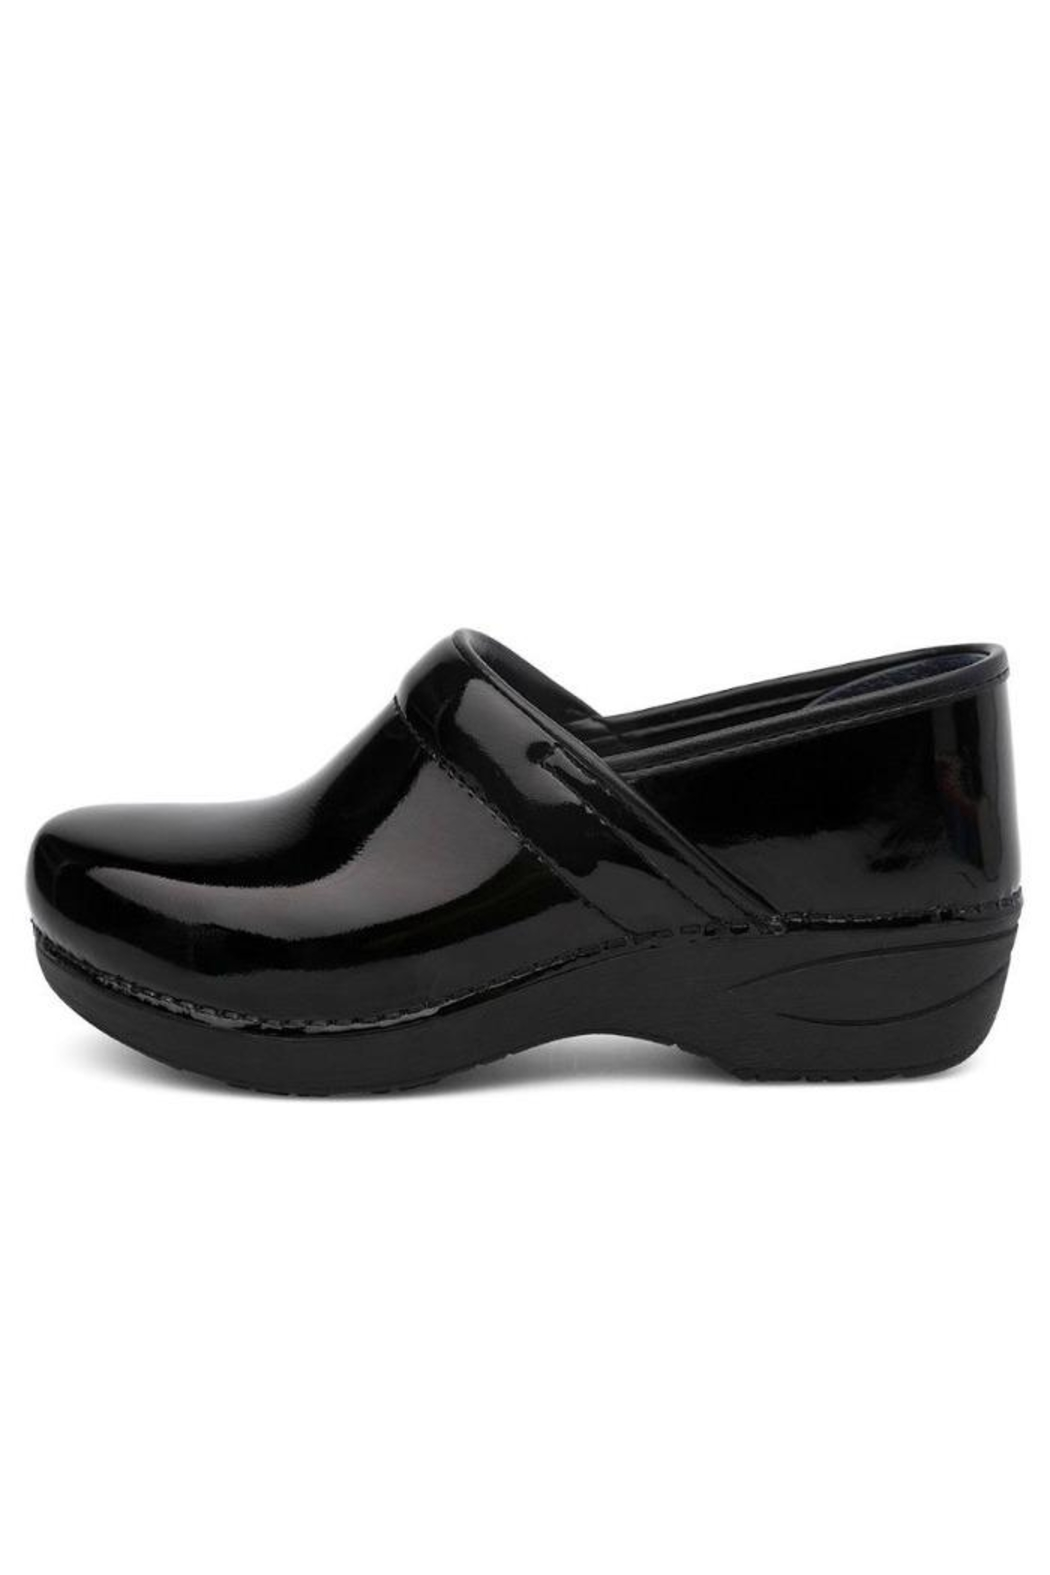 Dansko Xp2.0 Clogs - Main Image